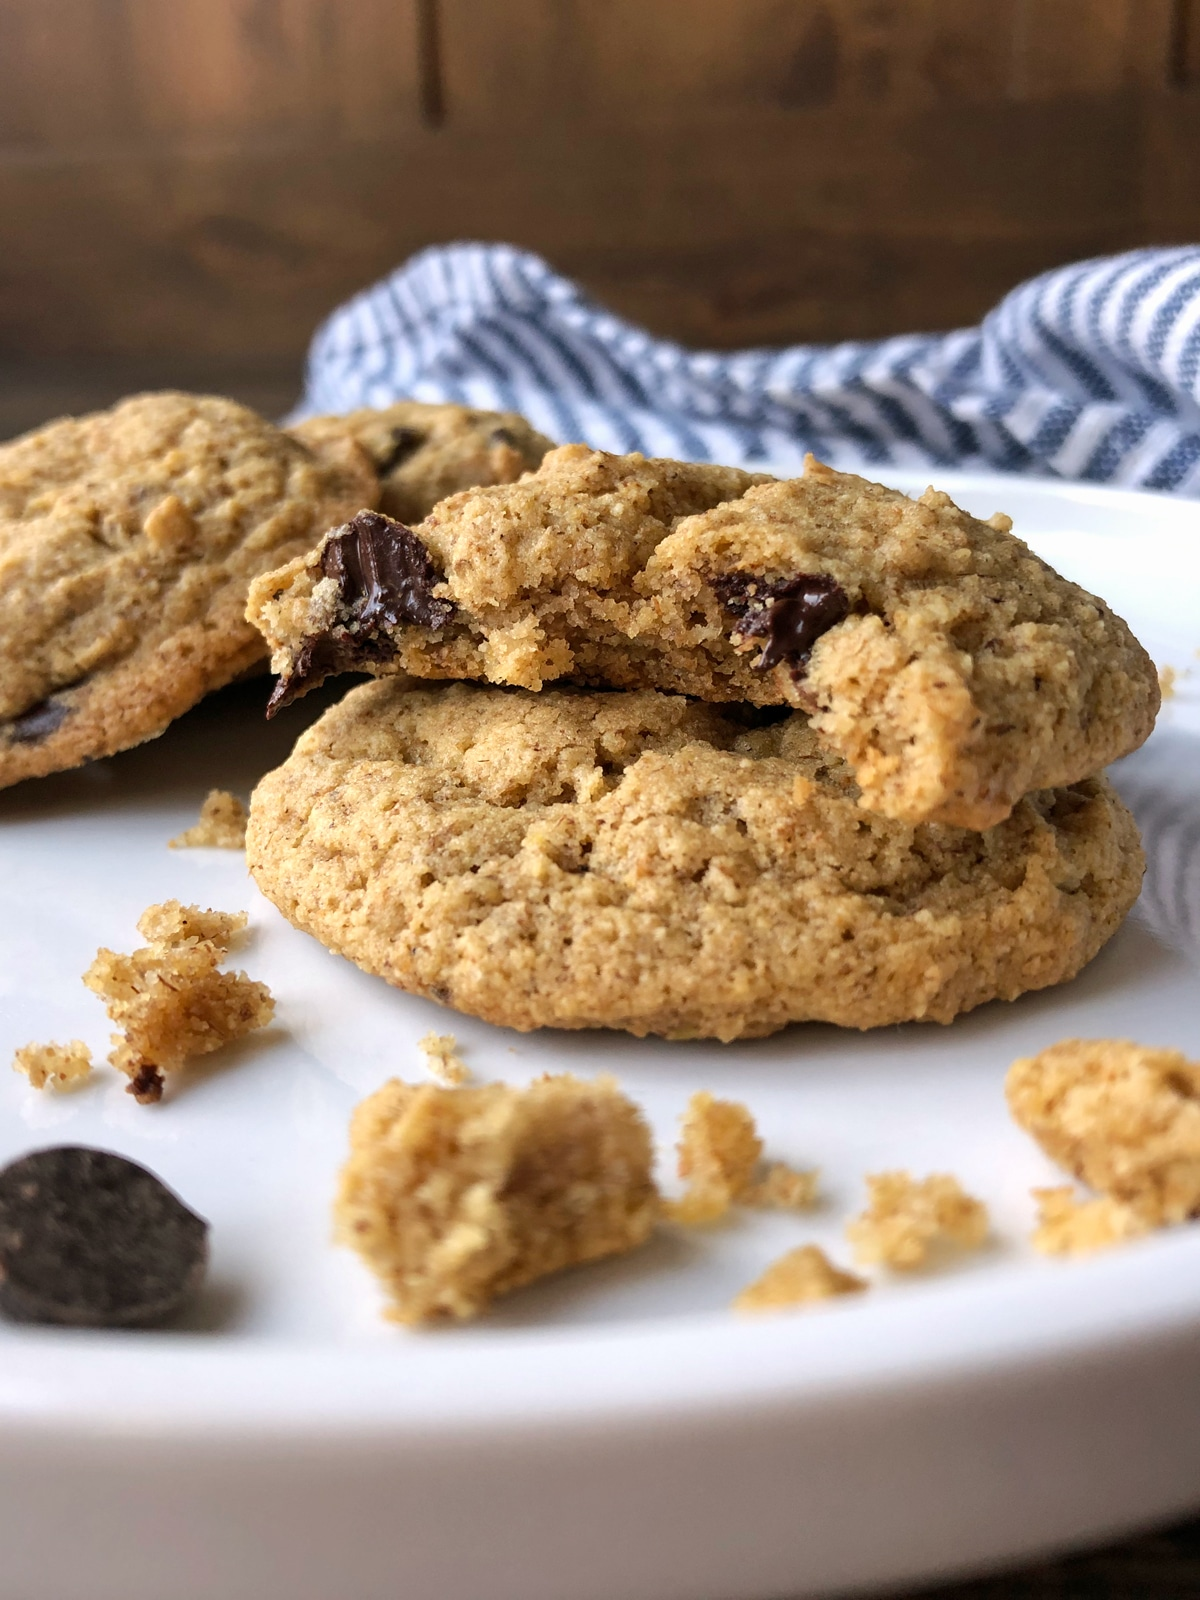 The most popular Paleo cookies always seem to be made with almond flour. But, I like to be different. I don't want all my recipes to contain nuts and I really like tigernut flour (it has a nutty, naturally sweet flavor and is allergy friendly). I also wanted to take this recipe a step further and create a Paleo cookie that was not only nut free but also egg free. Thus, these Paleo, Vegan AND allergy free Tigernut Flour Chocolate Chip Cookies were born!